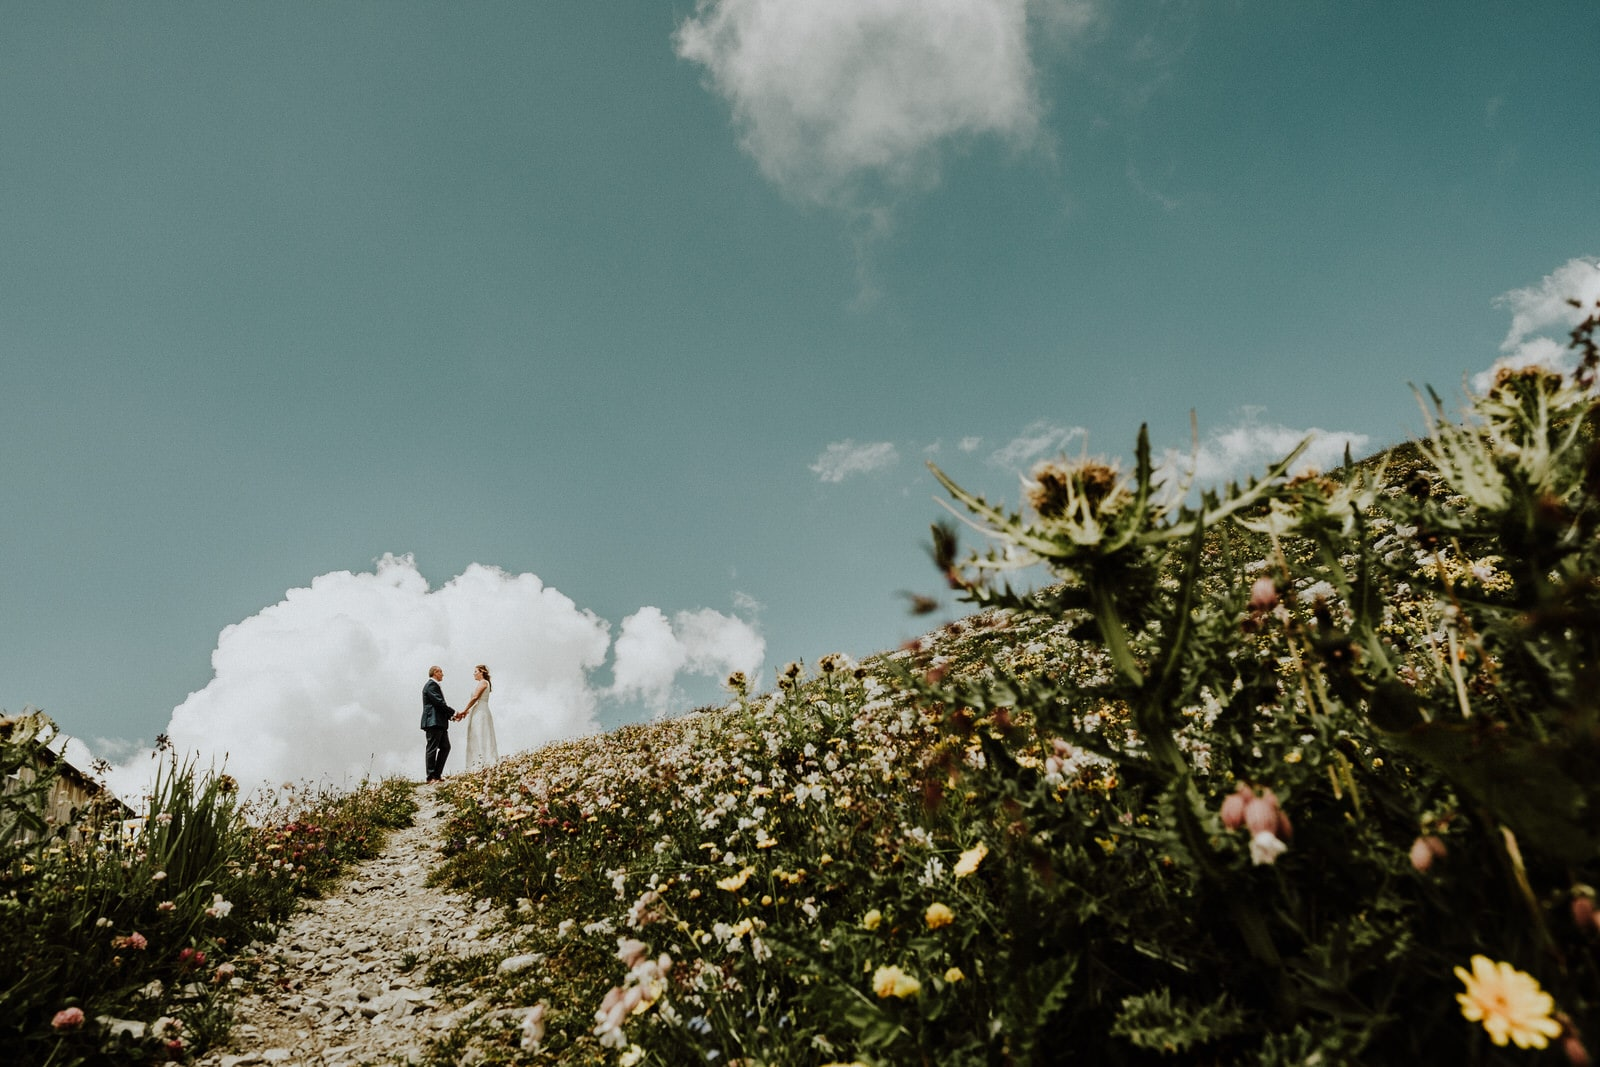 After-wedding shoot in Lech Austria by Wild Connections Photography